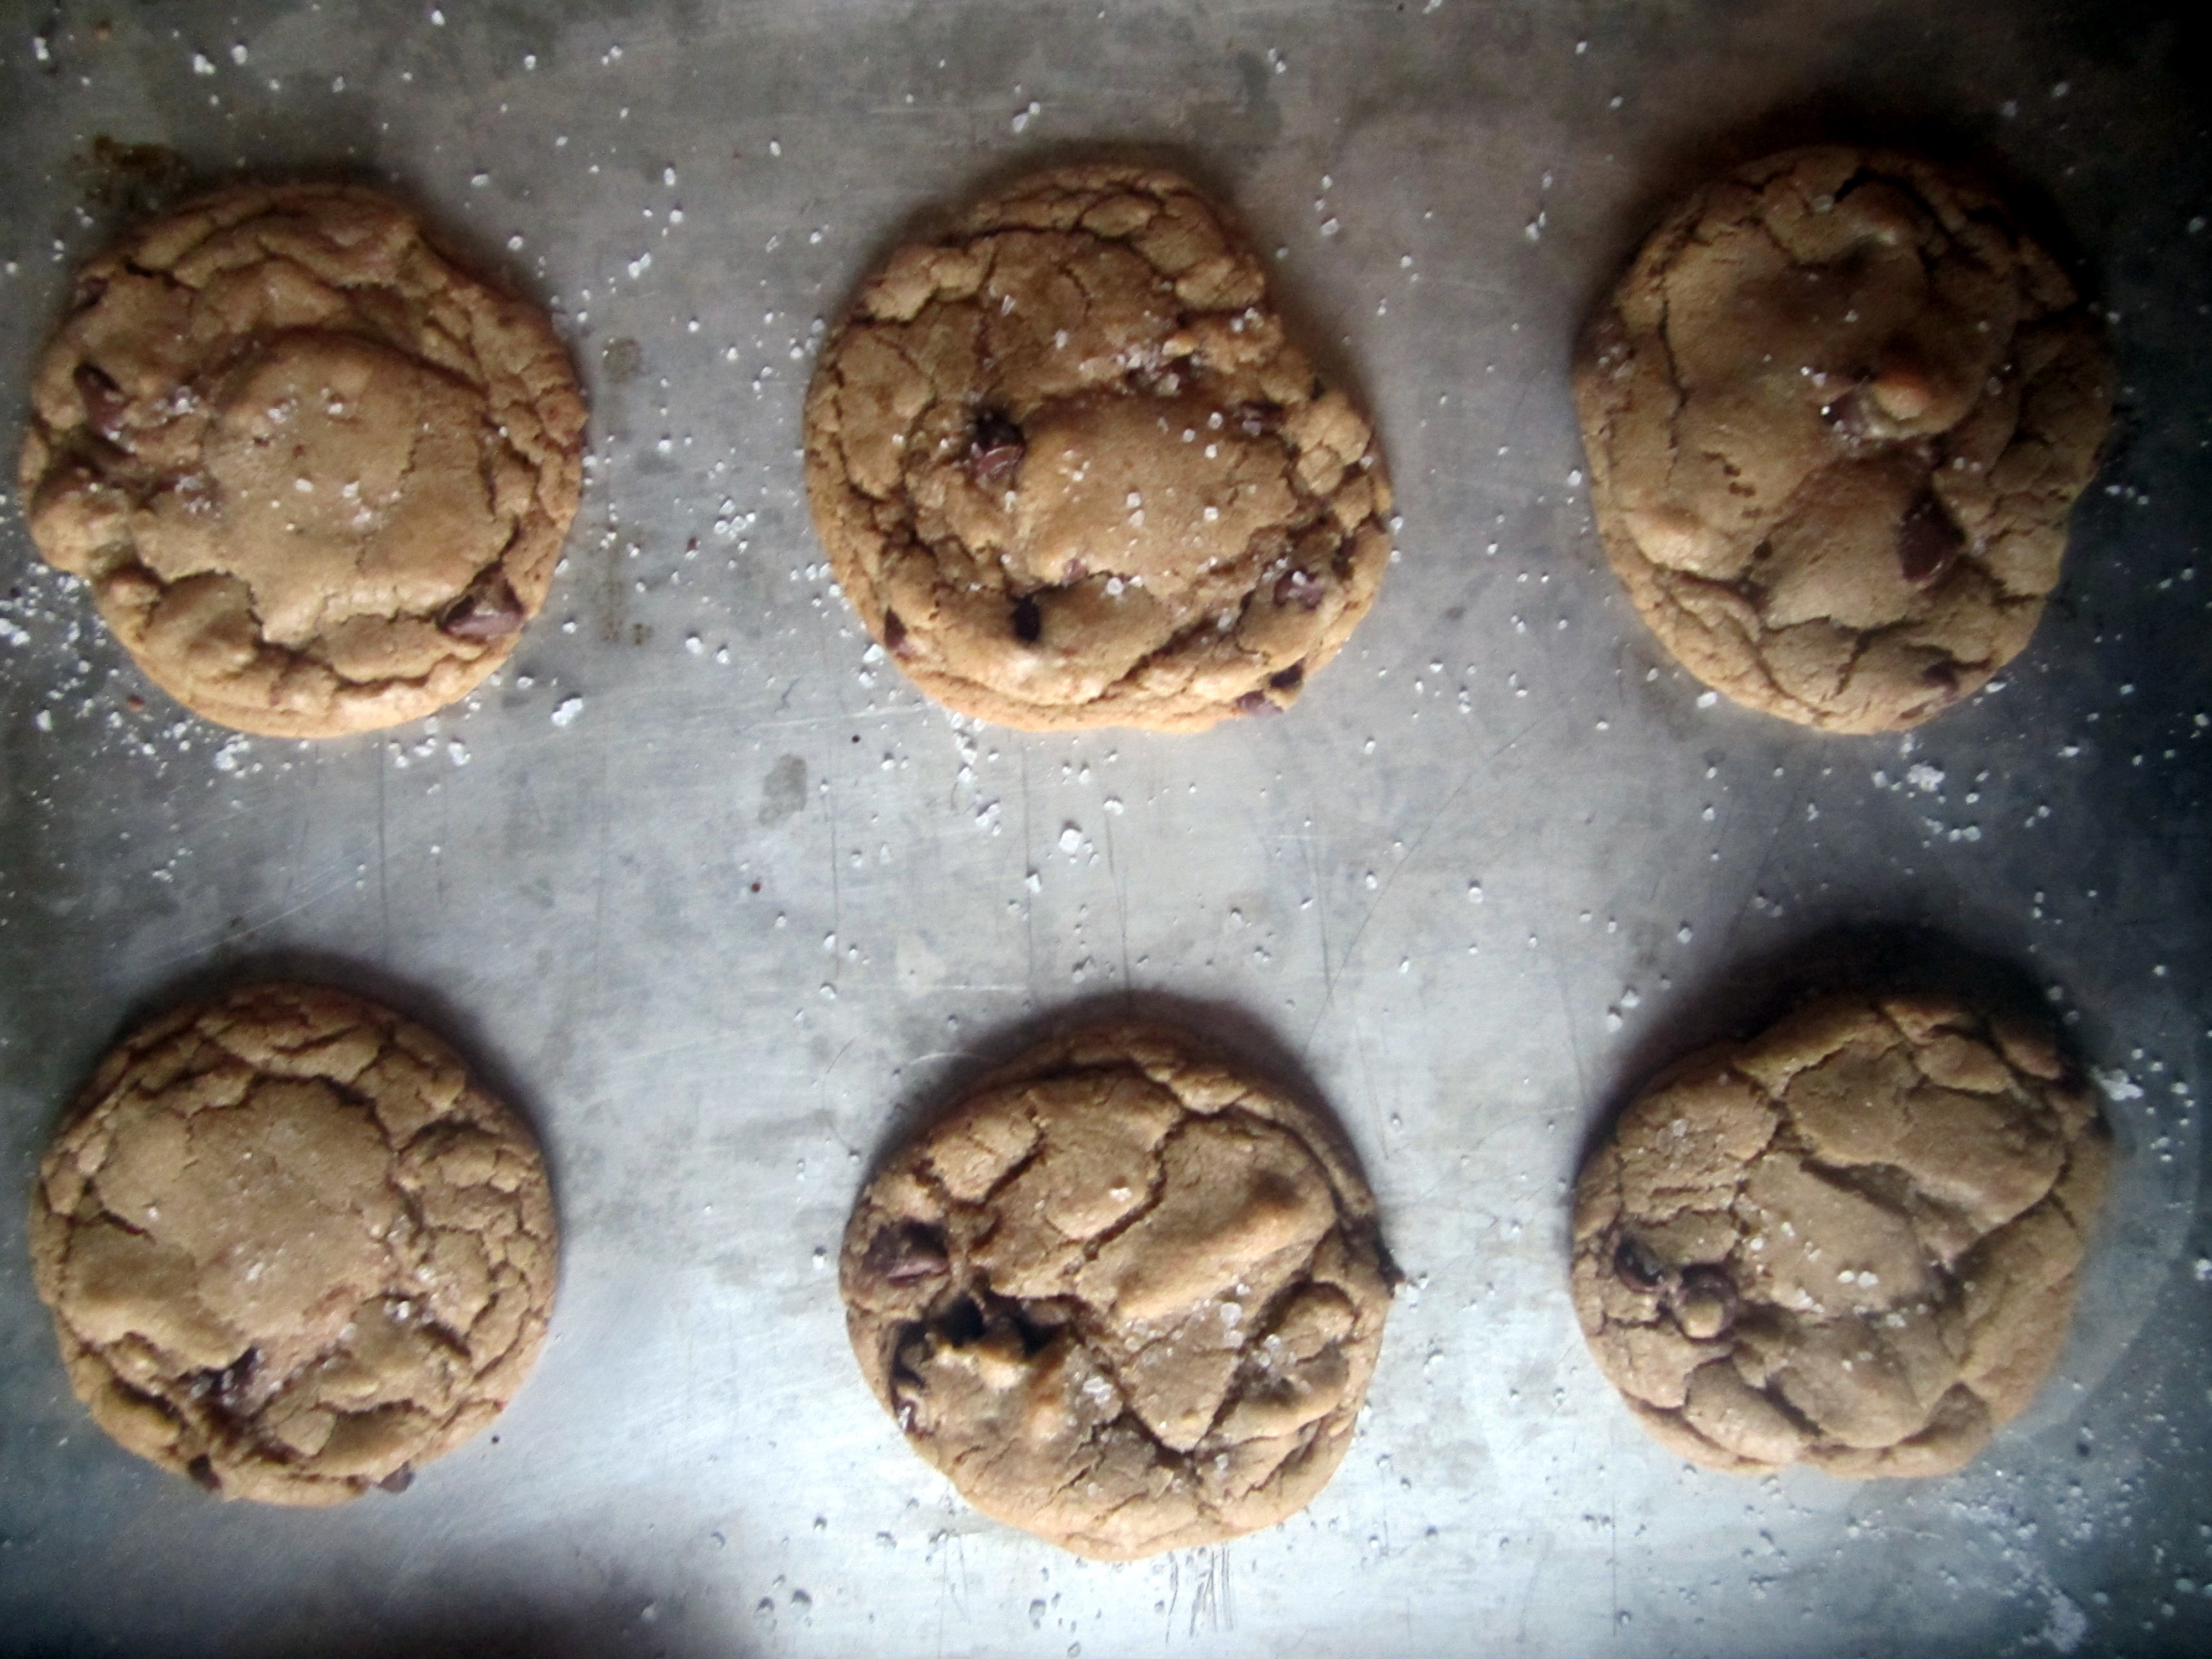 Brown Butter Chocolate Chip Cookies with sea salt | Ambitious Kichen